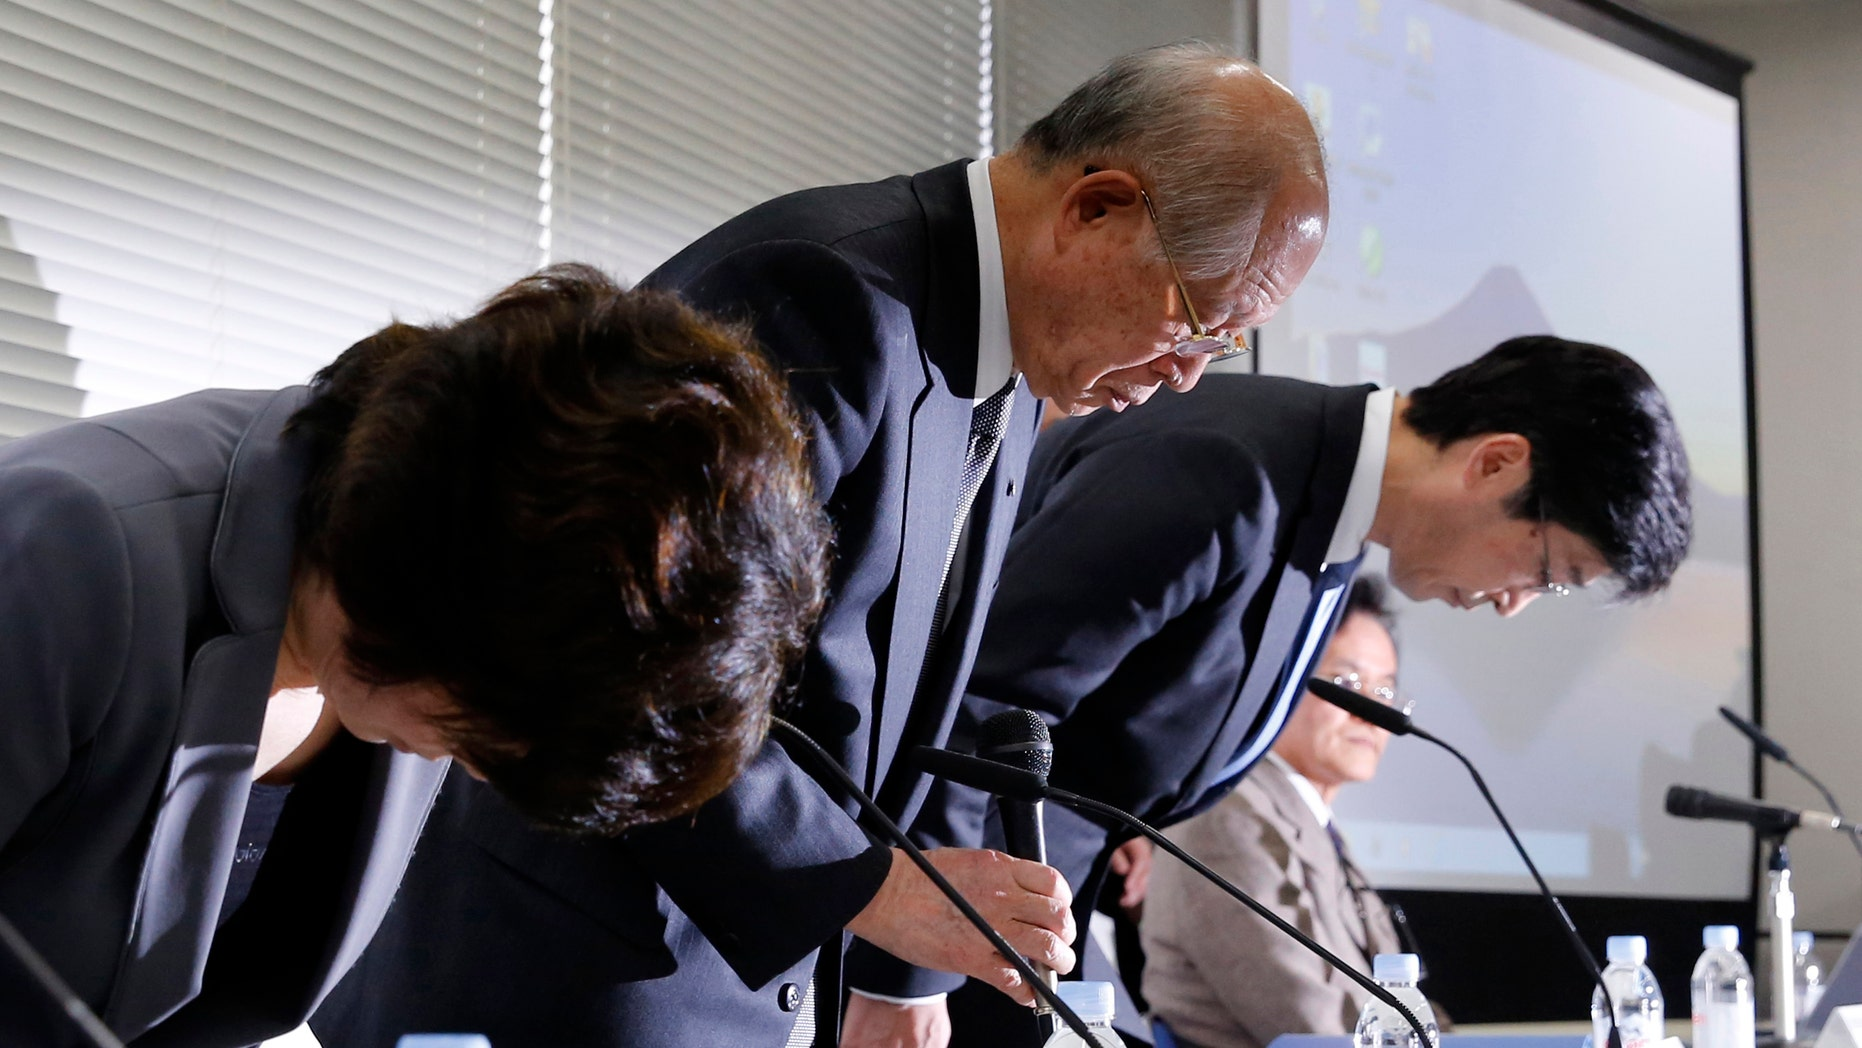 Nobel Prize-winning chemist and President of Japanese research institute Riken, Ryoji Noyori (C) bows with other Riken executives during a news conference in Tokyo March 14, 2014 after apologizing for what they called 'grave mistakes' in their stem-cell study published in Nature magazine. (REUTERS/Toru Hanai)